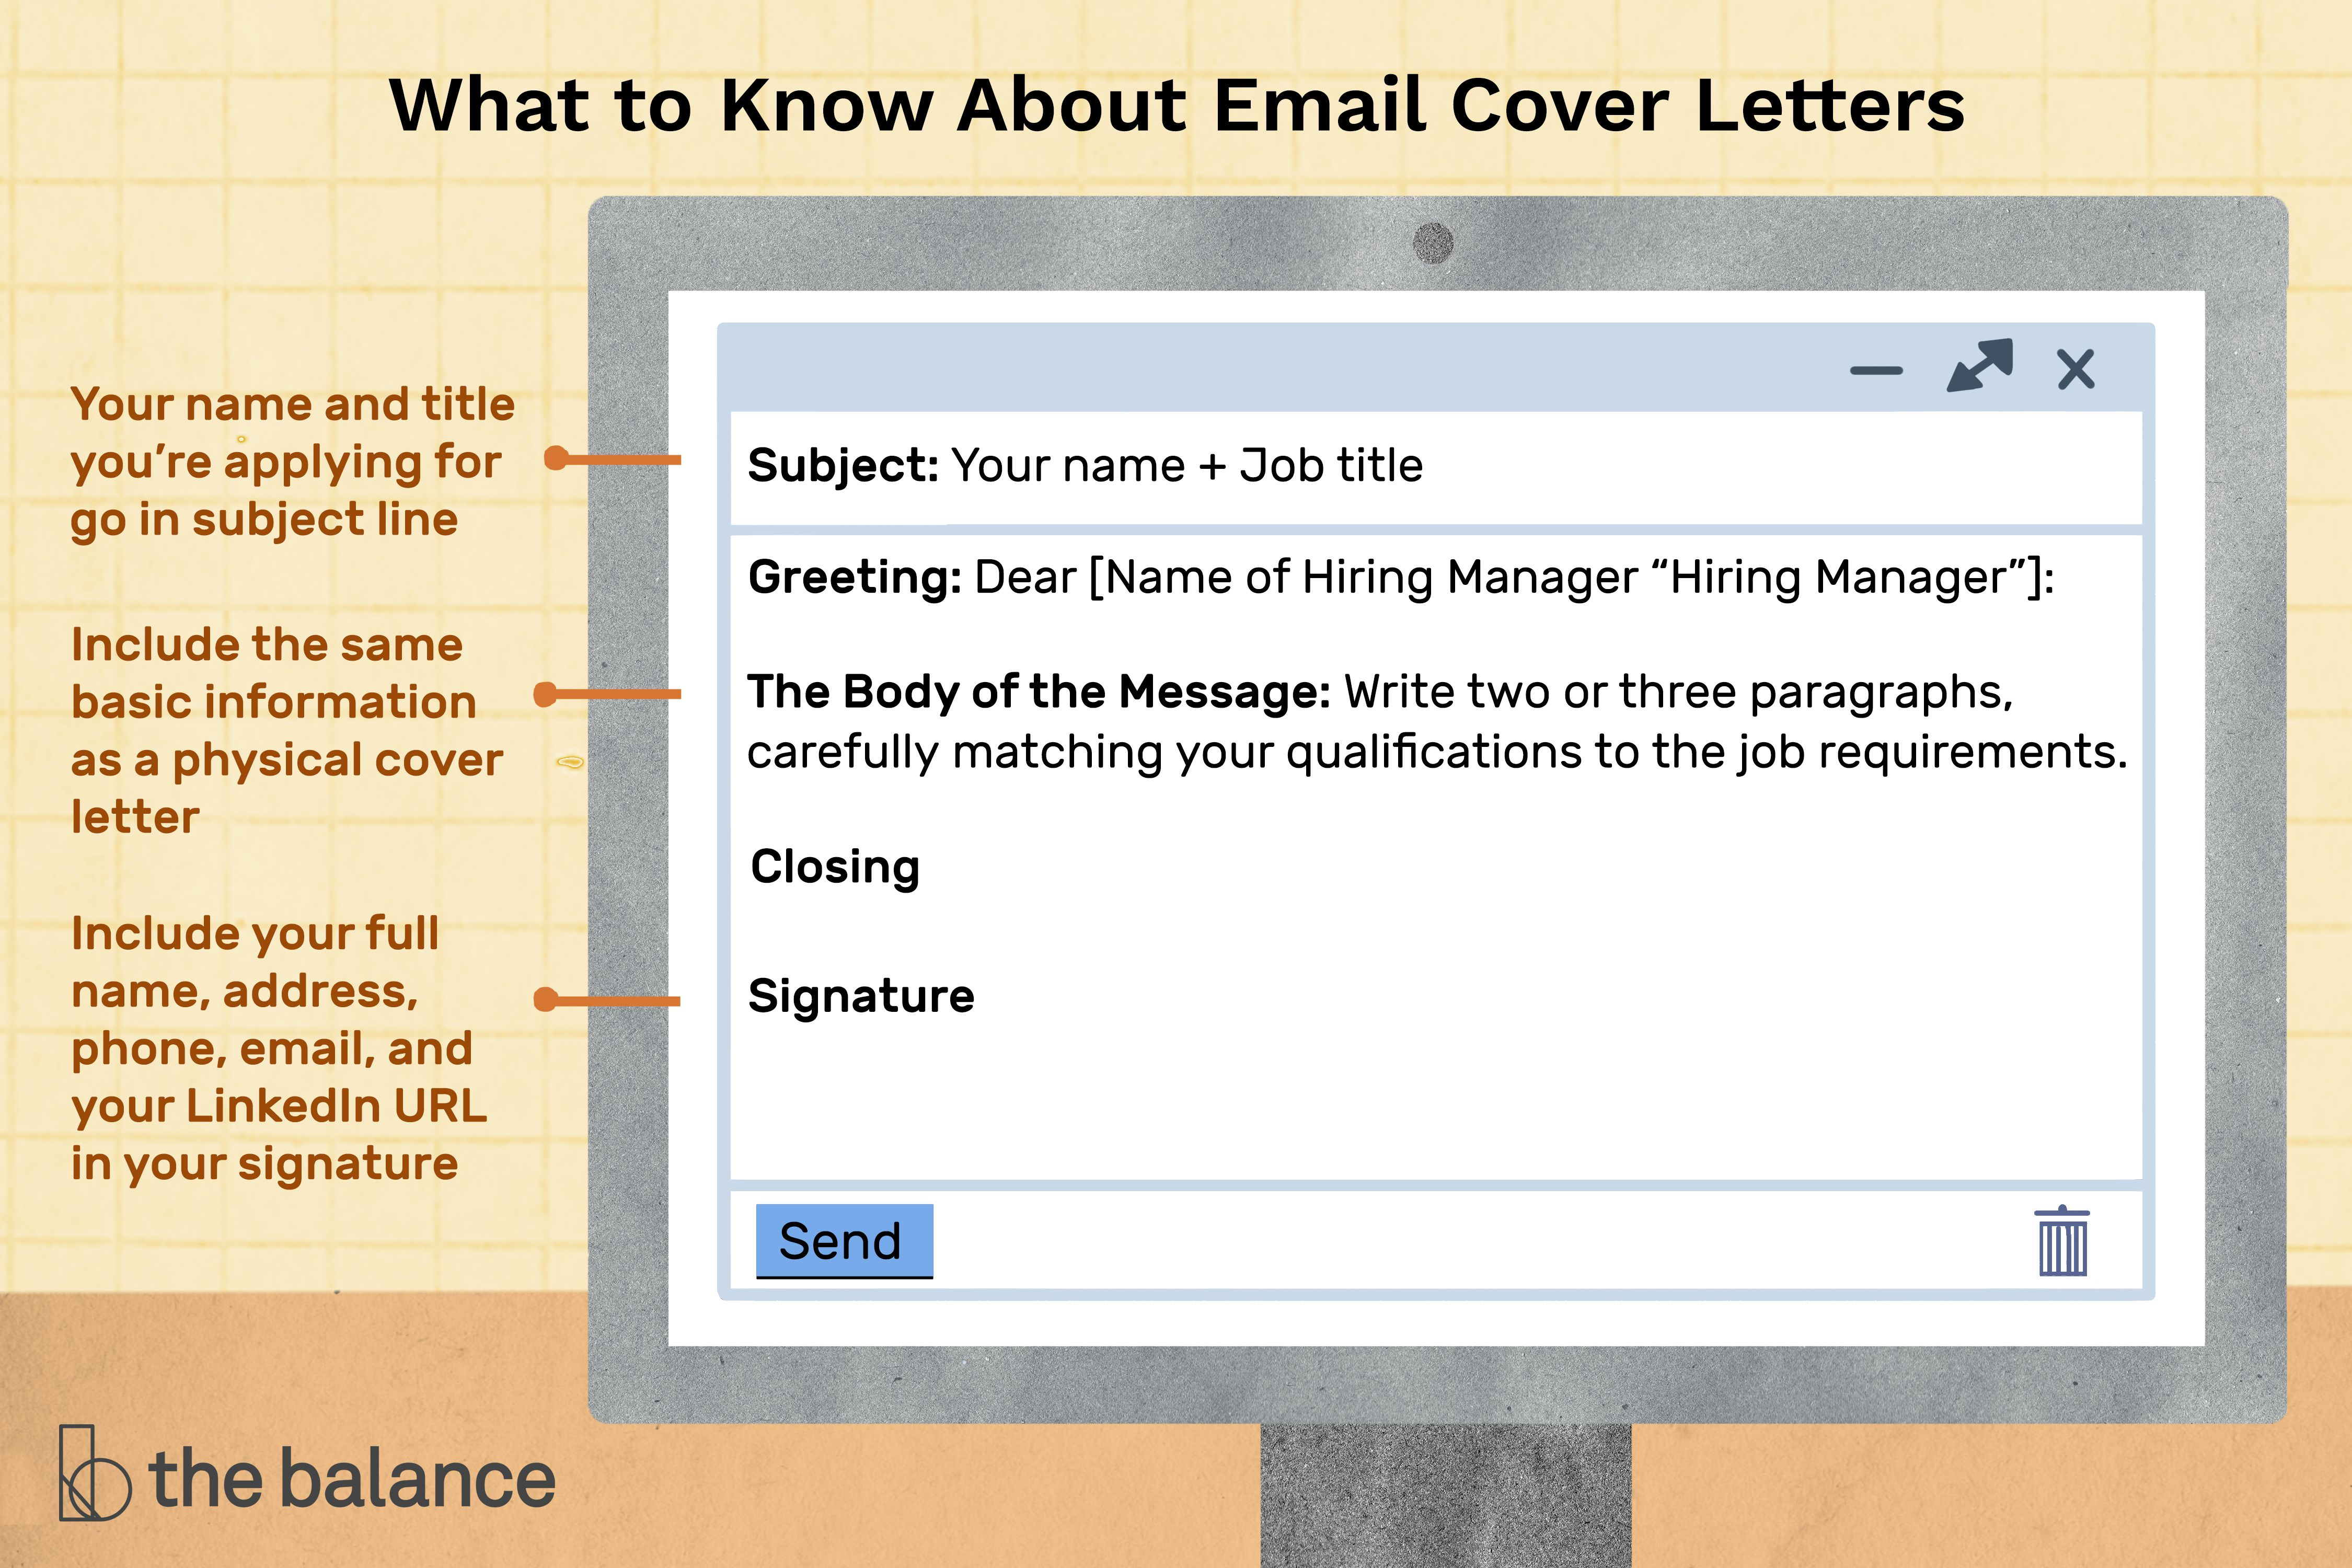 How Do You Write A Cover Letter If You Don't Know The Hiring Manager Primary Portraits Latest News